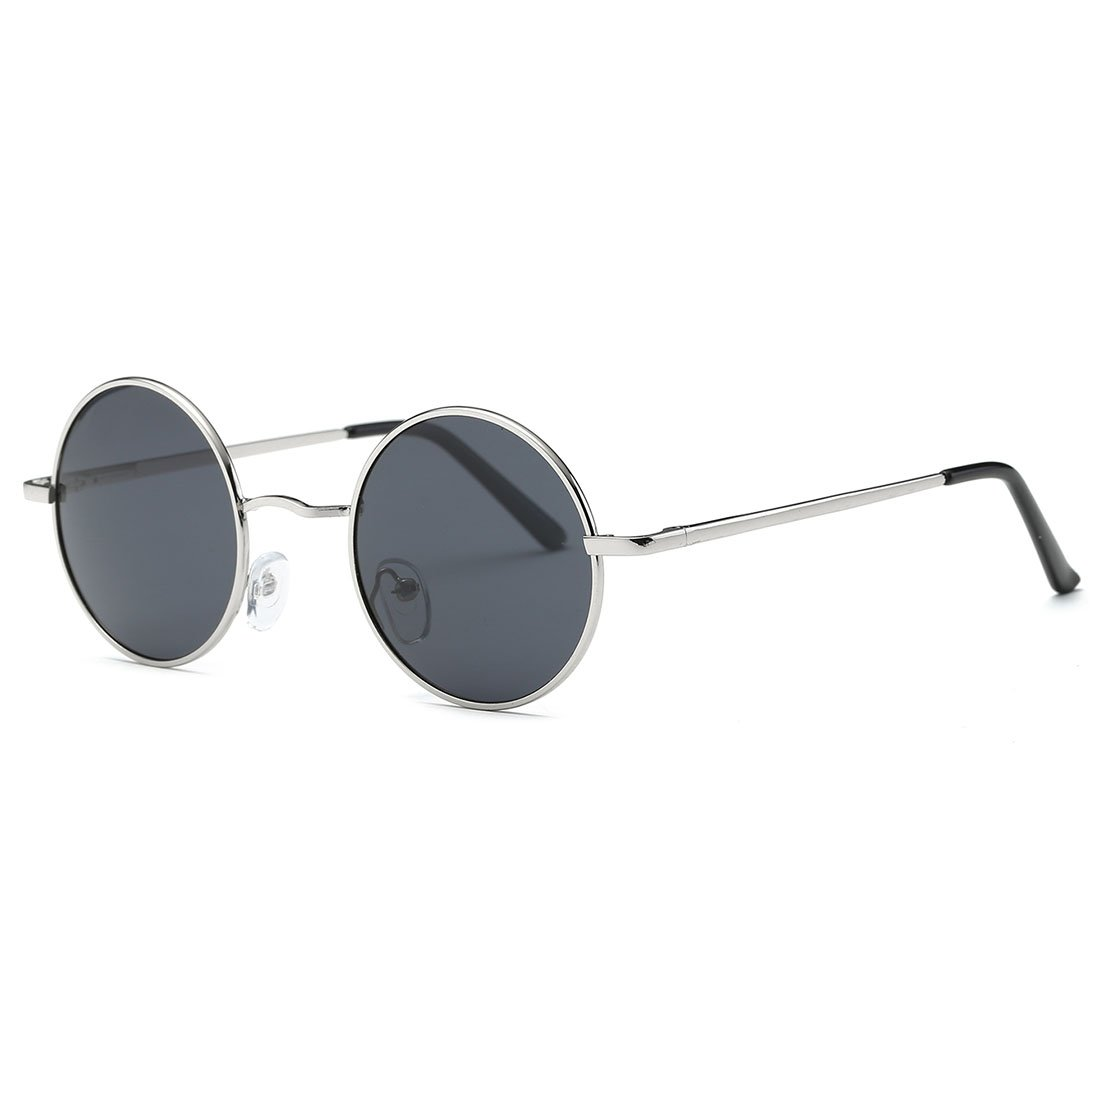 Kimorn Polarized Sunglasses Small Round Metal Frame Retro Unisex Sun Glasses K0518 K0518~1